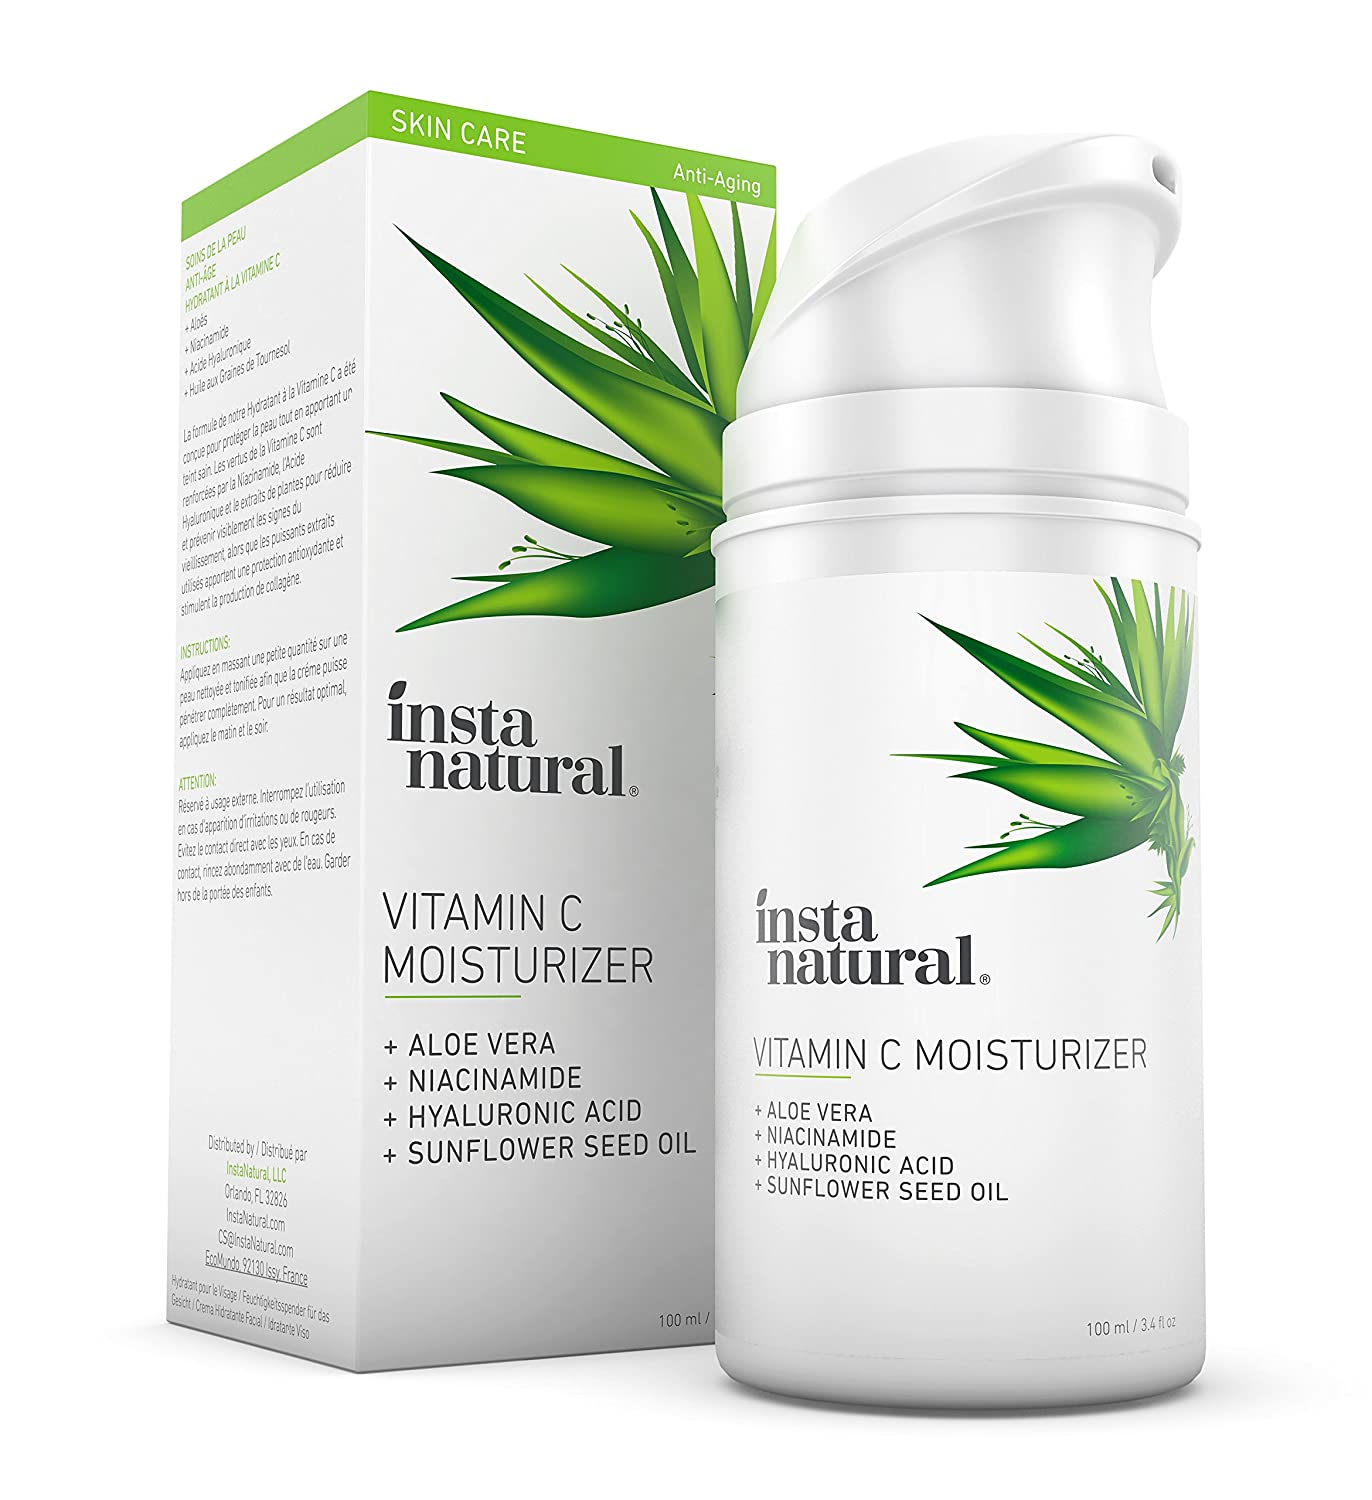 InstaNatural Vitamin C Moisturizer Cream - Facial Anti Aging & Wrinkle Reducing Lotion for Men & Women - With Hyaluronic Acid & Organic Jojoba Oil - Hydrating for Dry, Sensitive, Oily Skin - 3.4 OZ